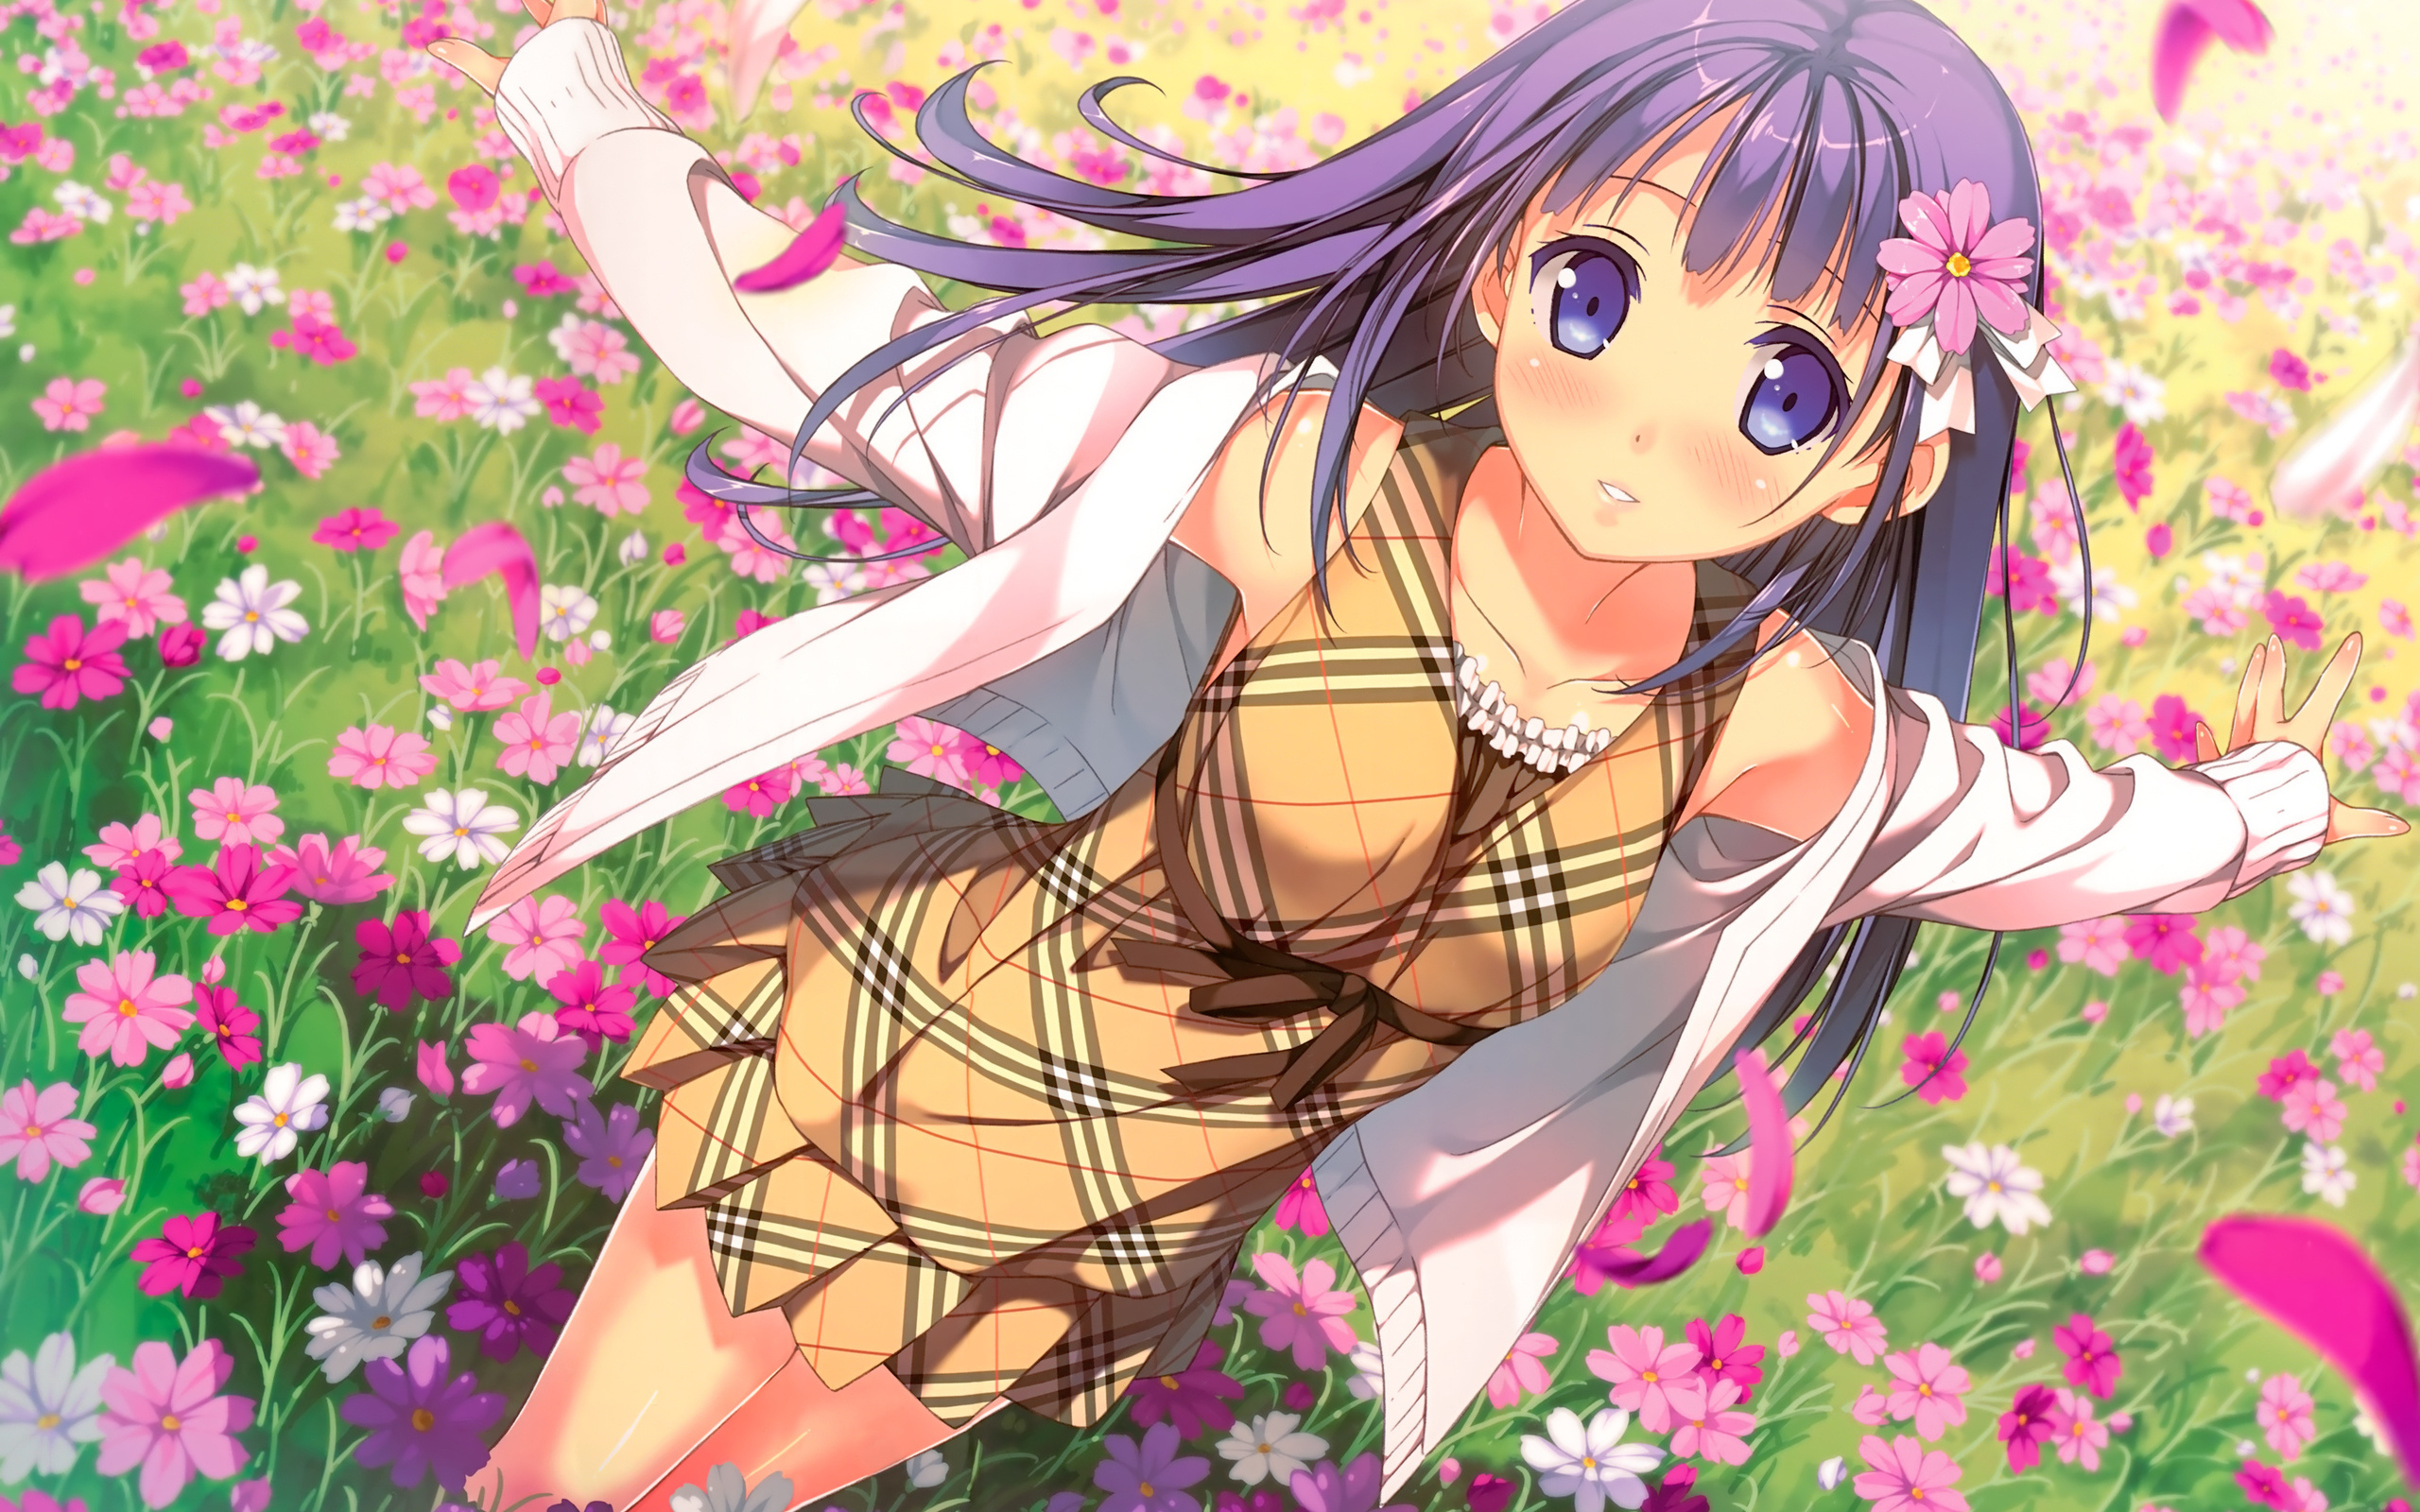 Anime Girl And Flowers Field Wallpapers - 2560x1600 - 1619847